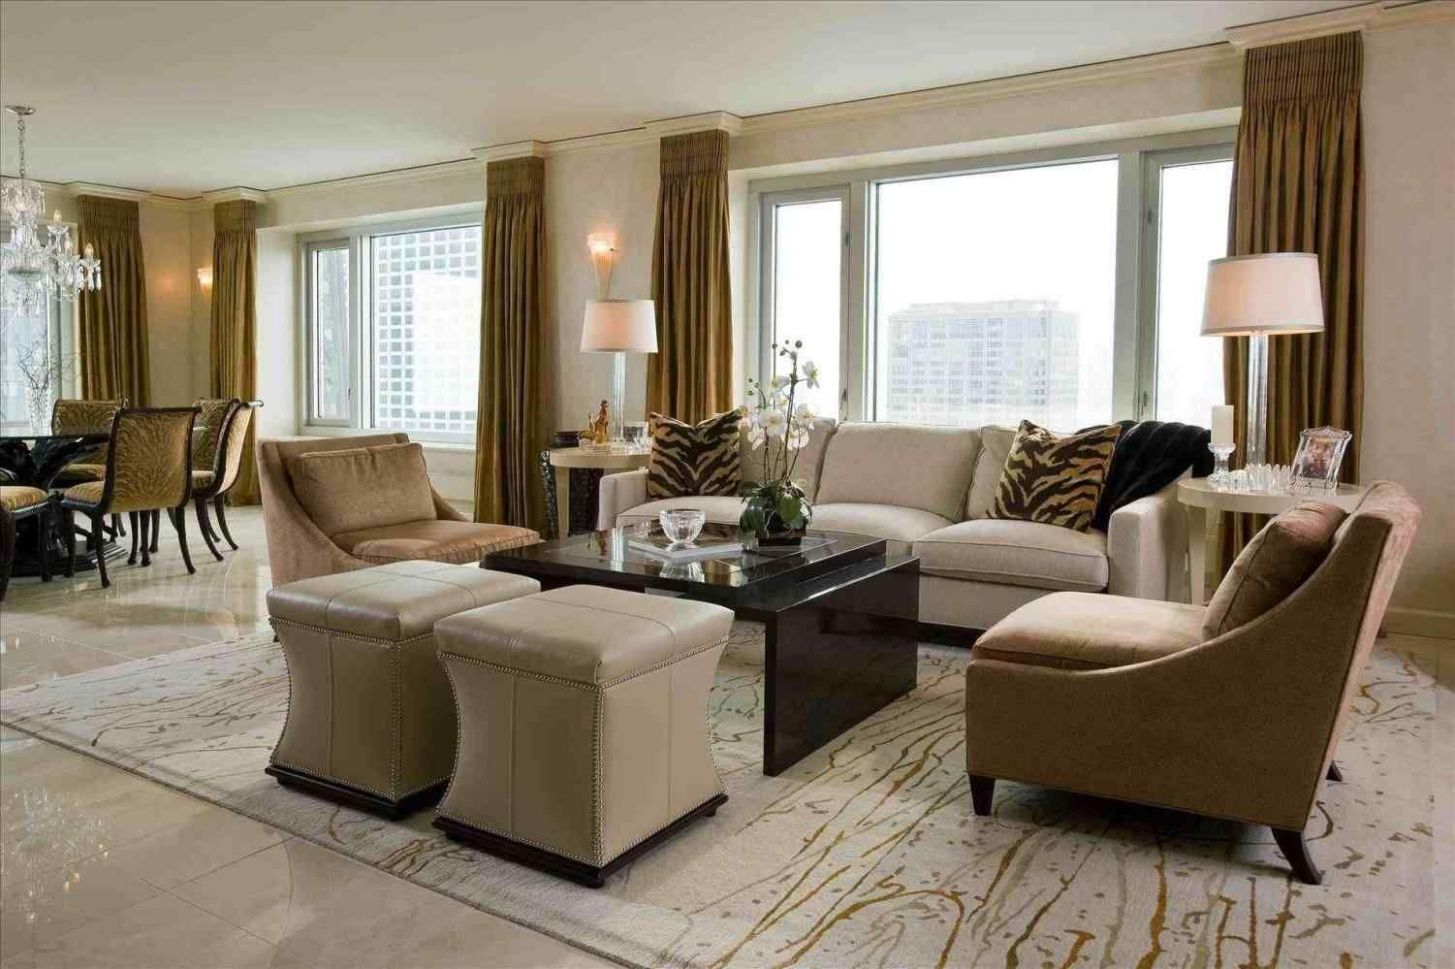 furniture in a 11' x 11' living room - Yahoo Image Search Results ...